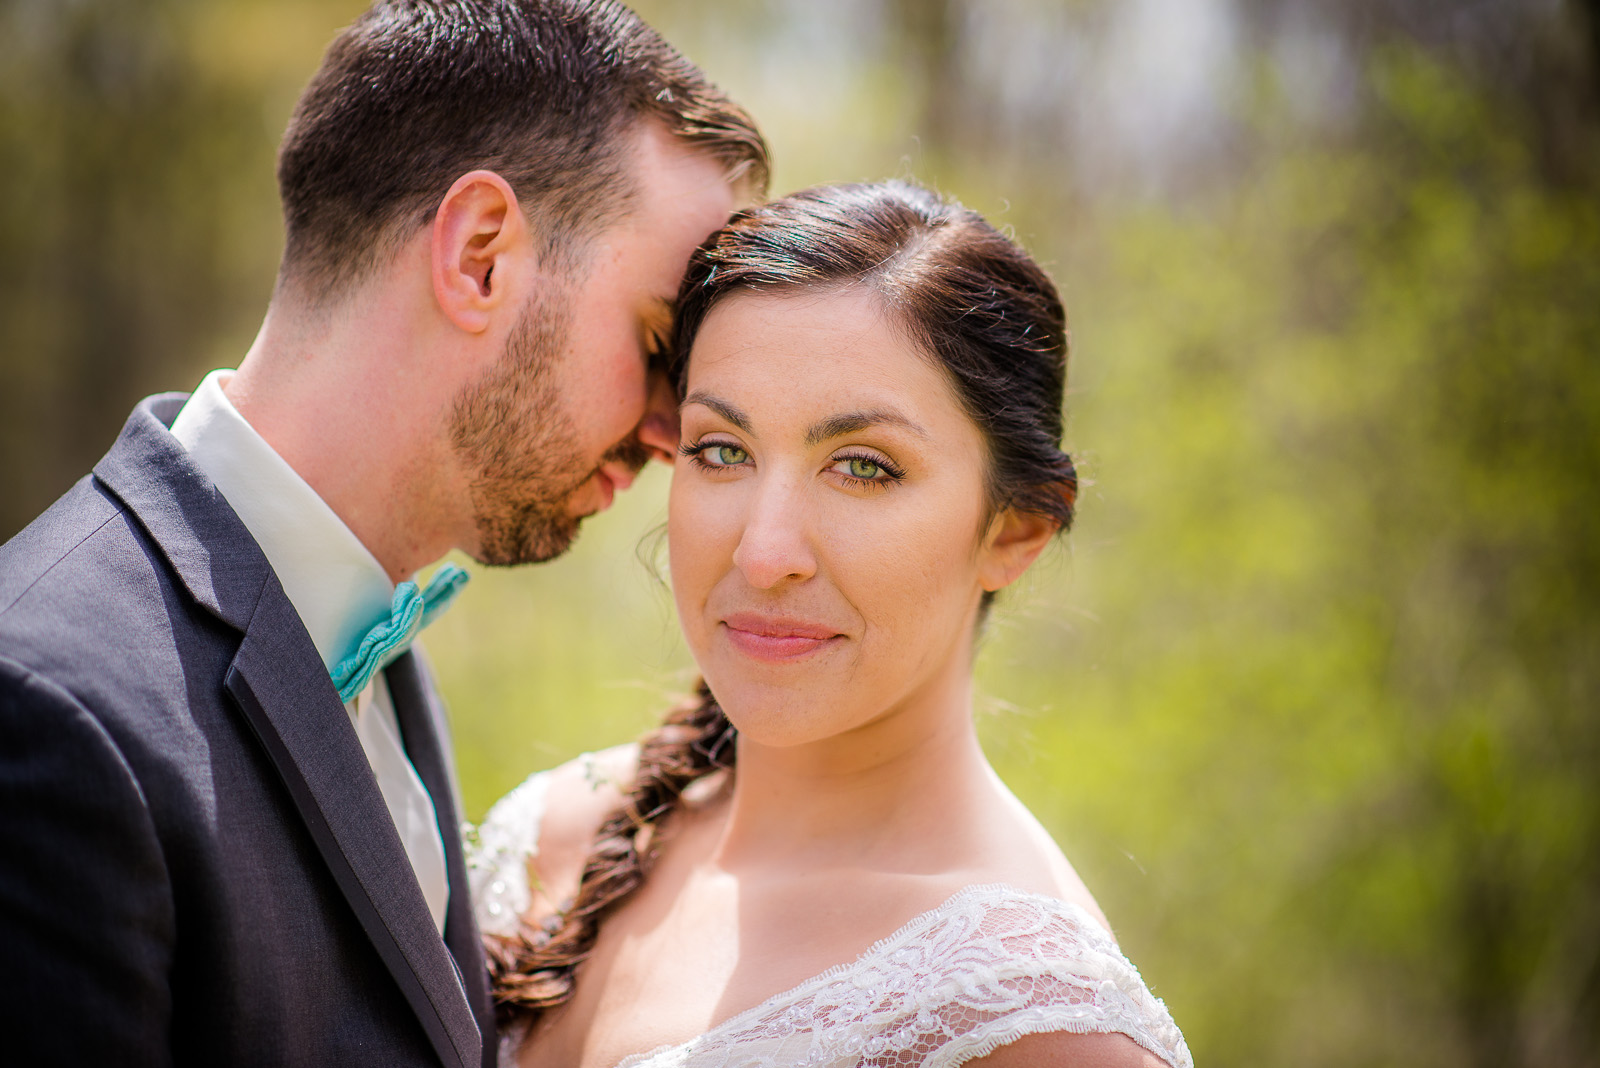 Eric_and_Christy_Photography_Blog_Katie_Travis_Wedding-21